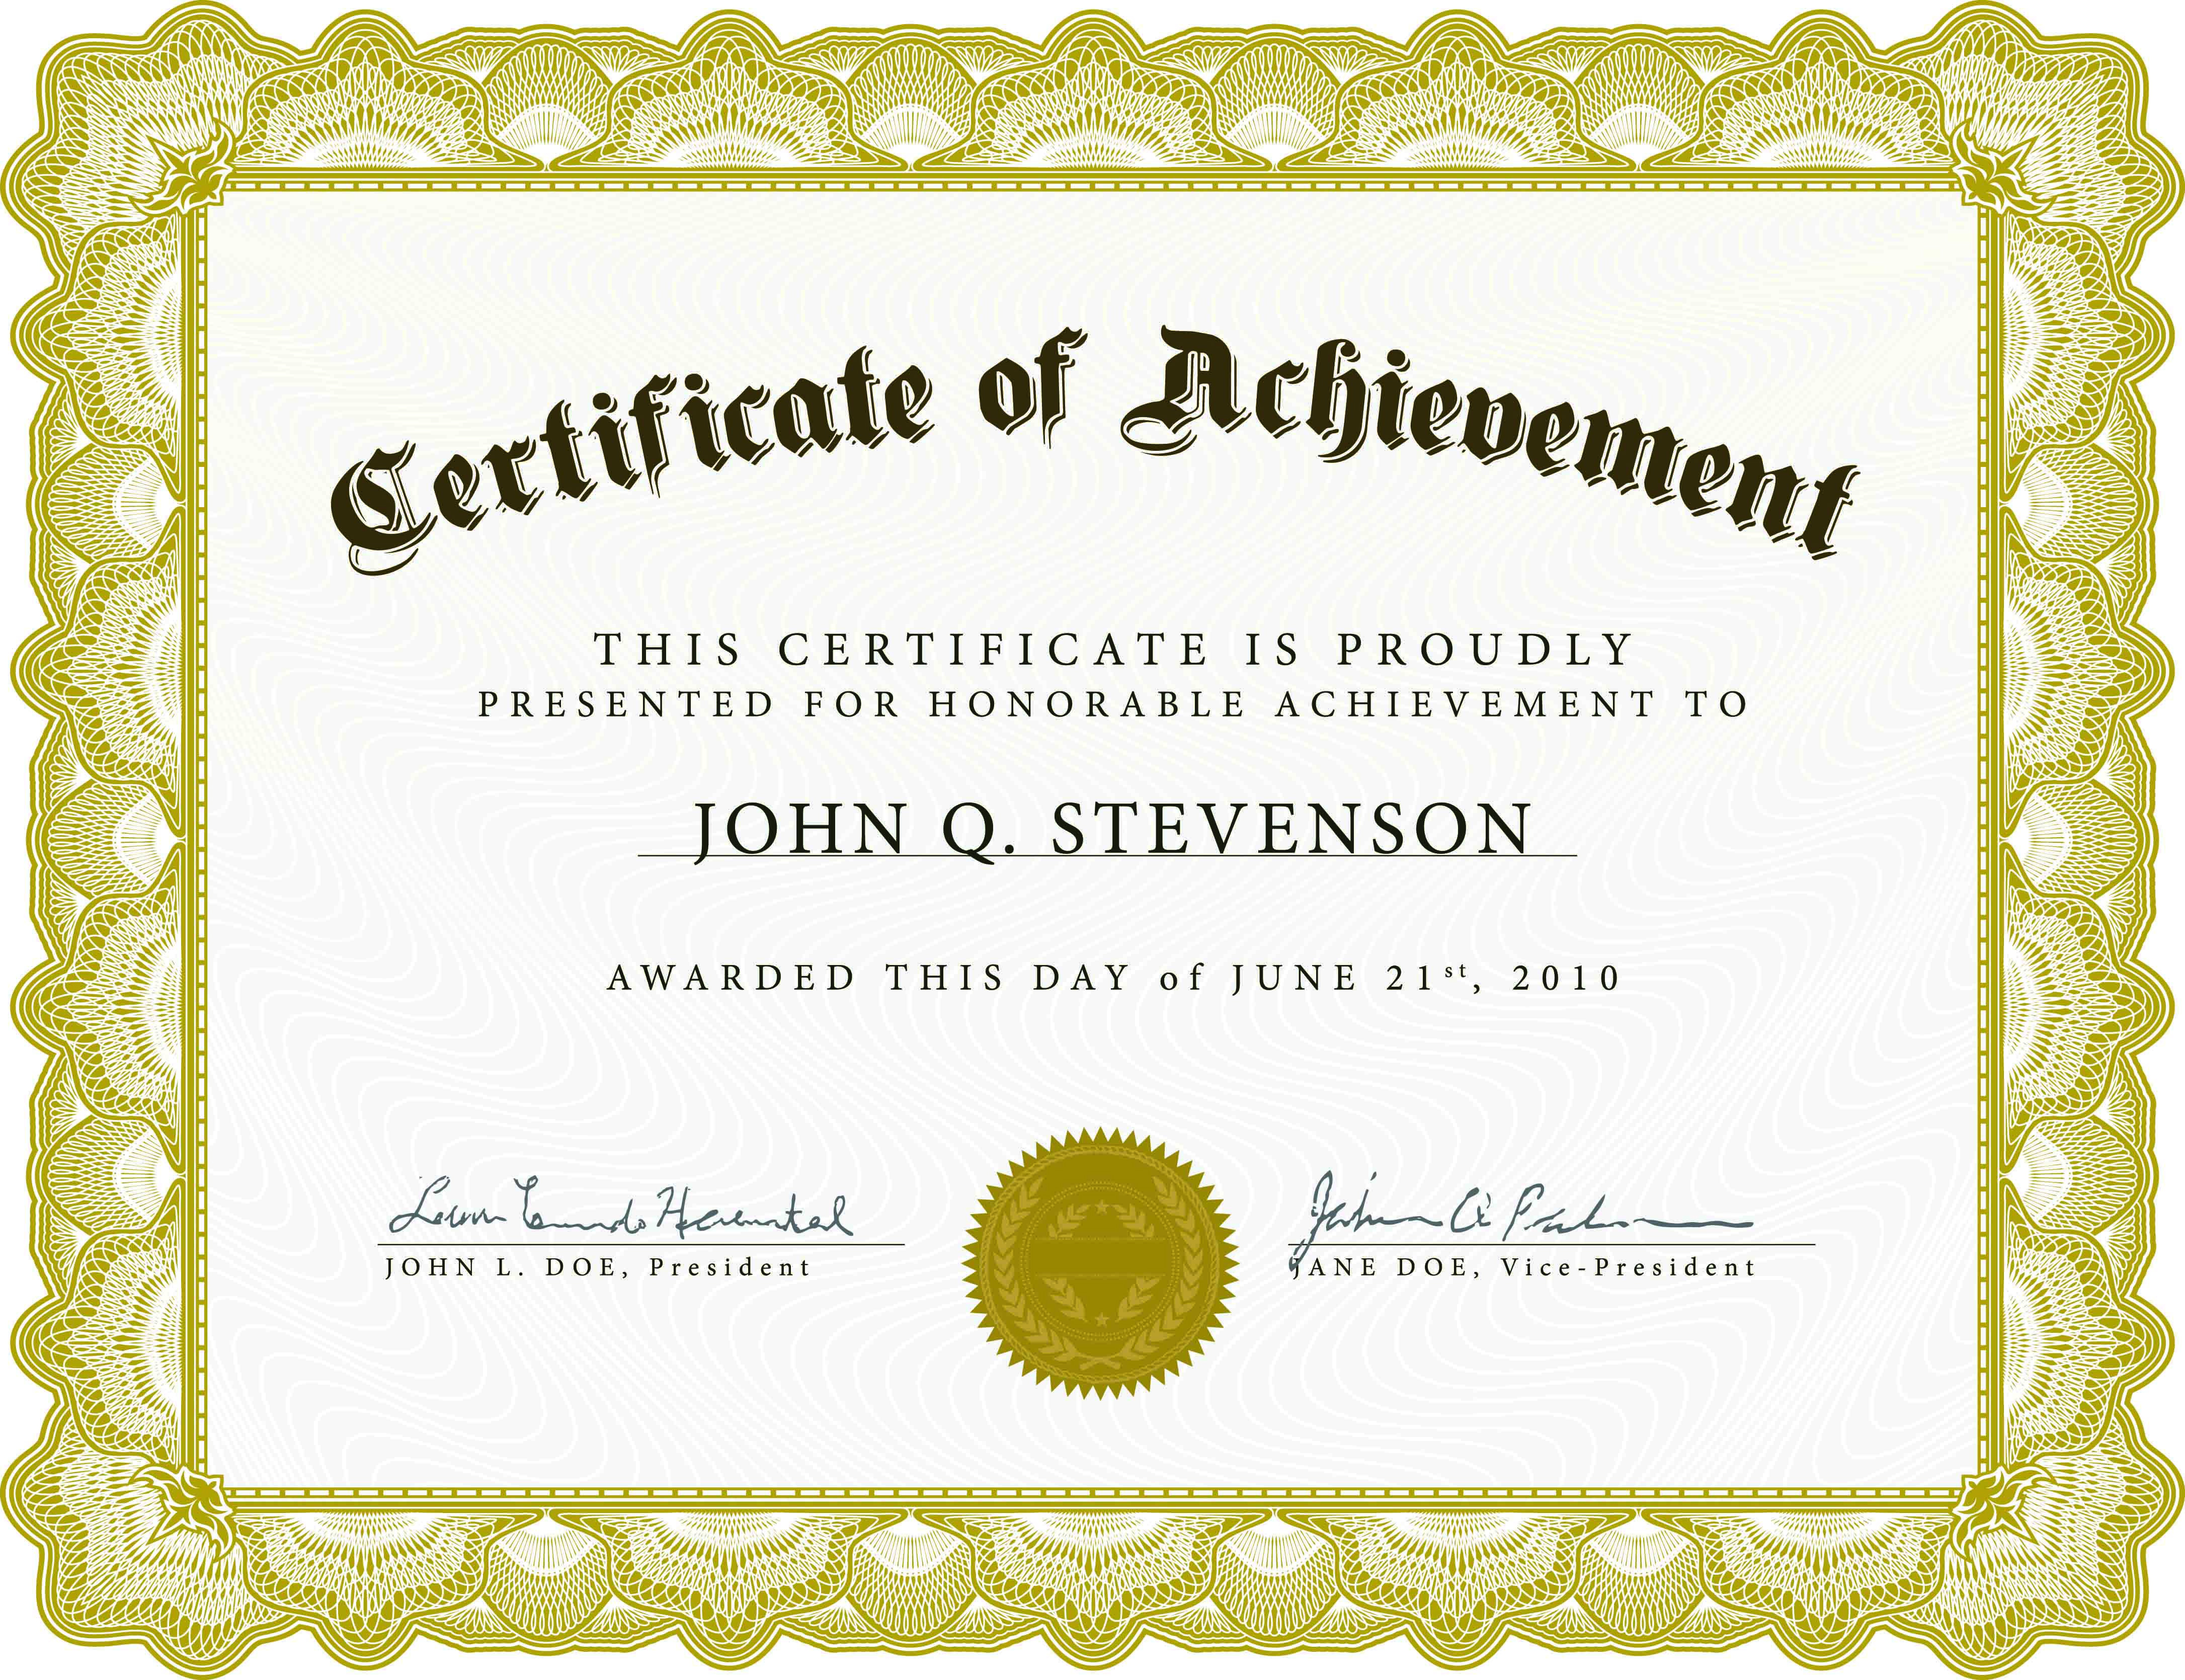 Download Blank Certificate Template X3Hr9Dto | St. Gabriel's Youth - Free Printable Blank Certificate Templates